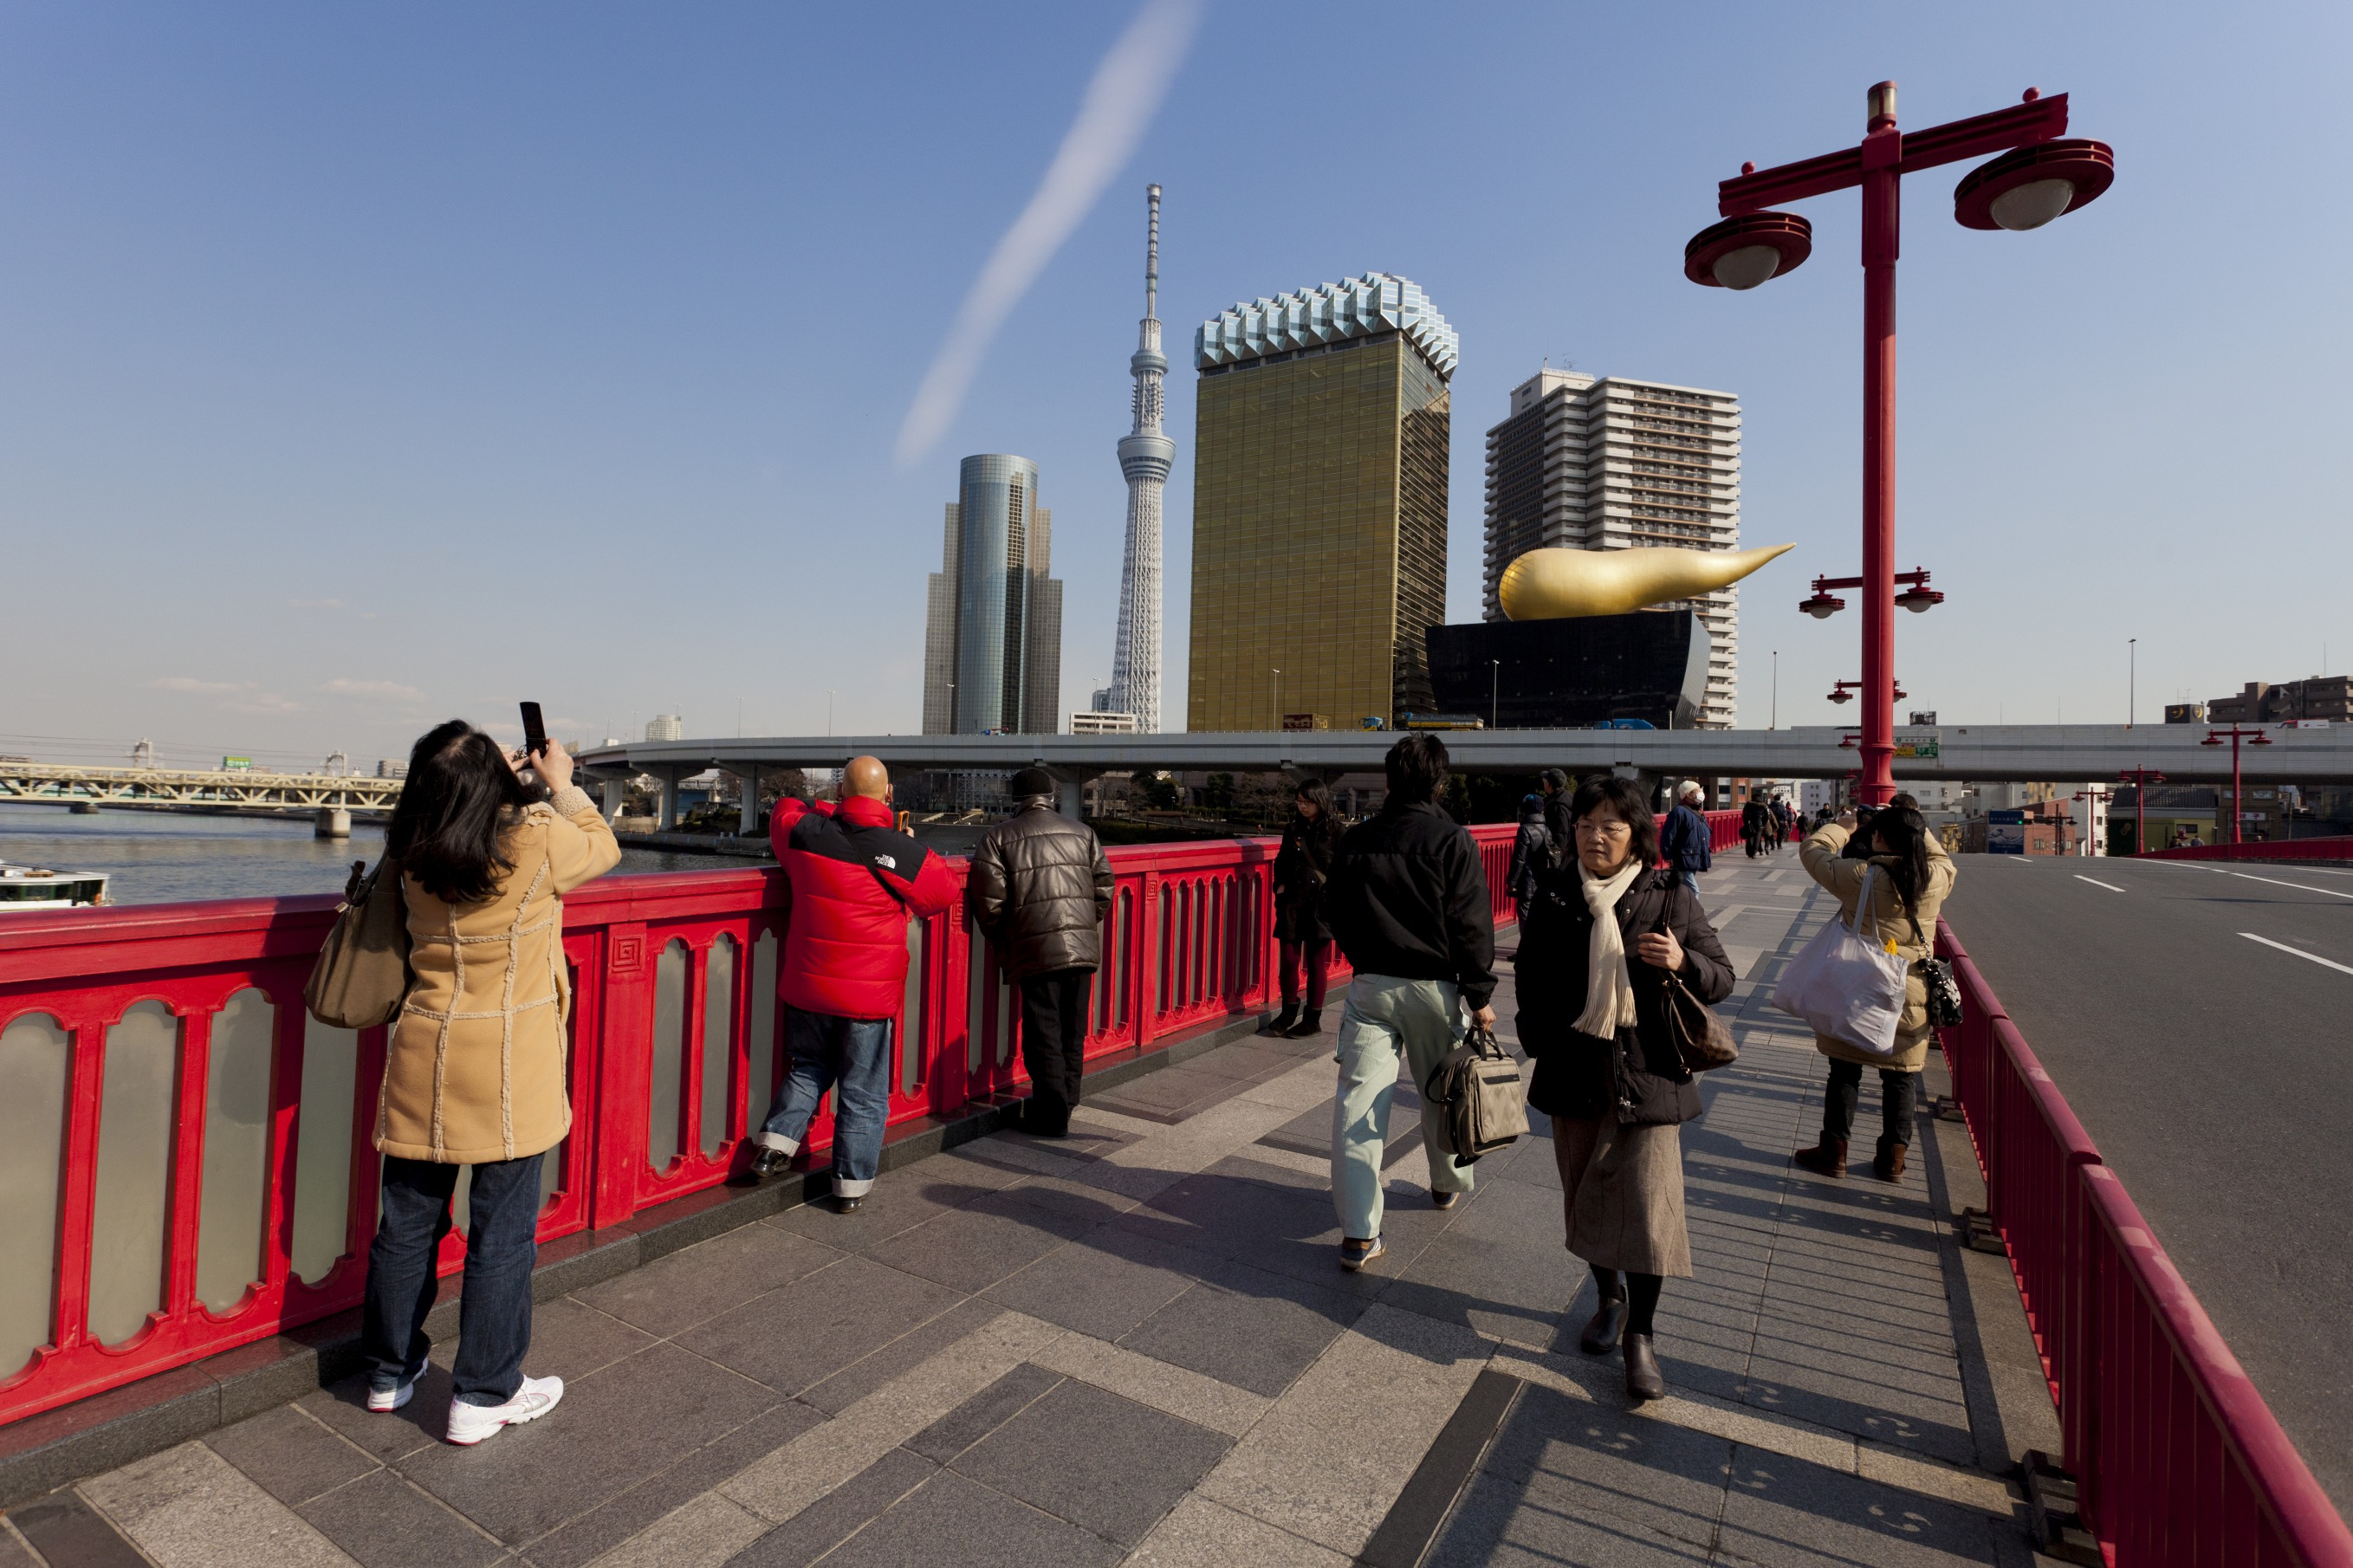 Spend some time exploring the area around the Tokyo Skytree.